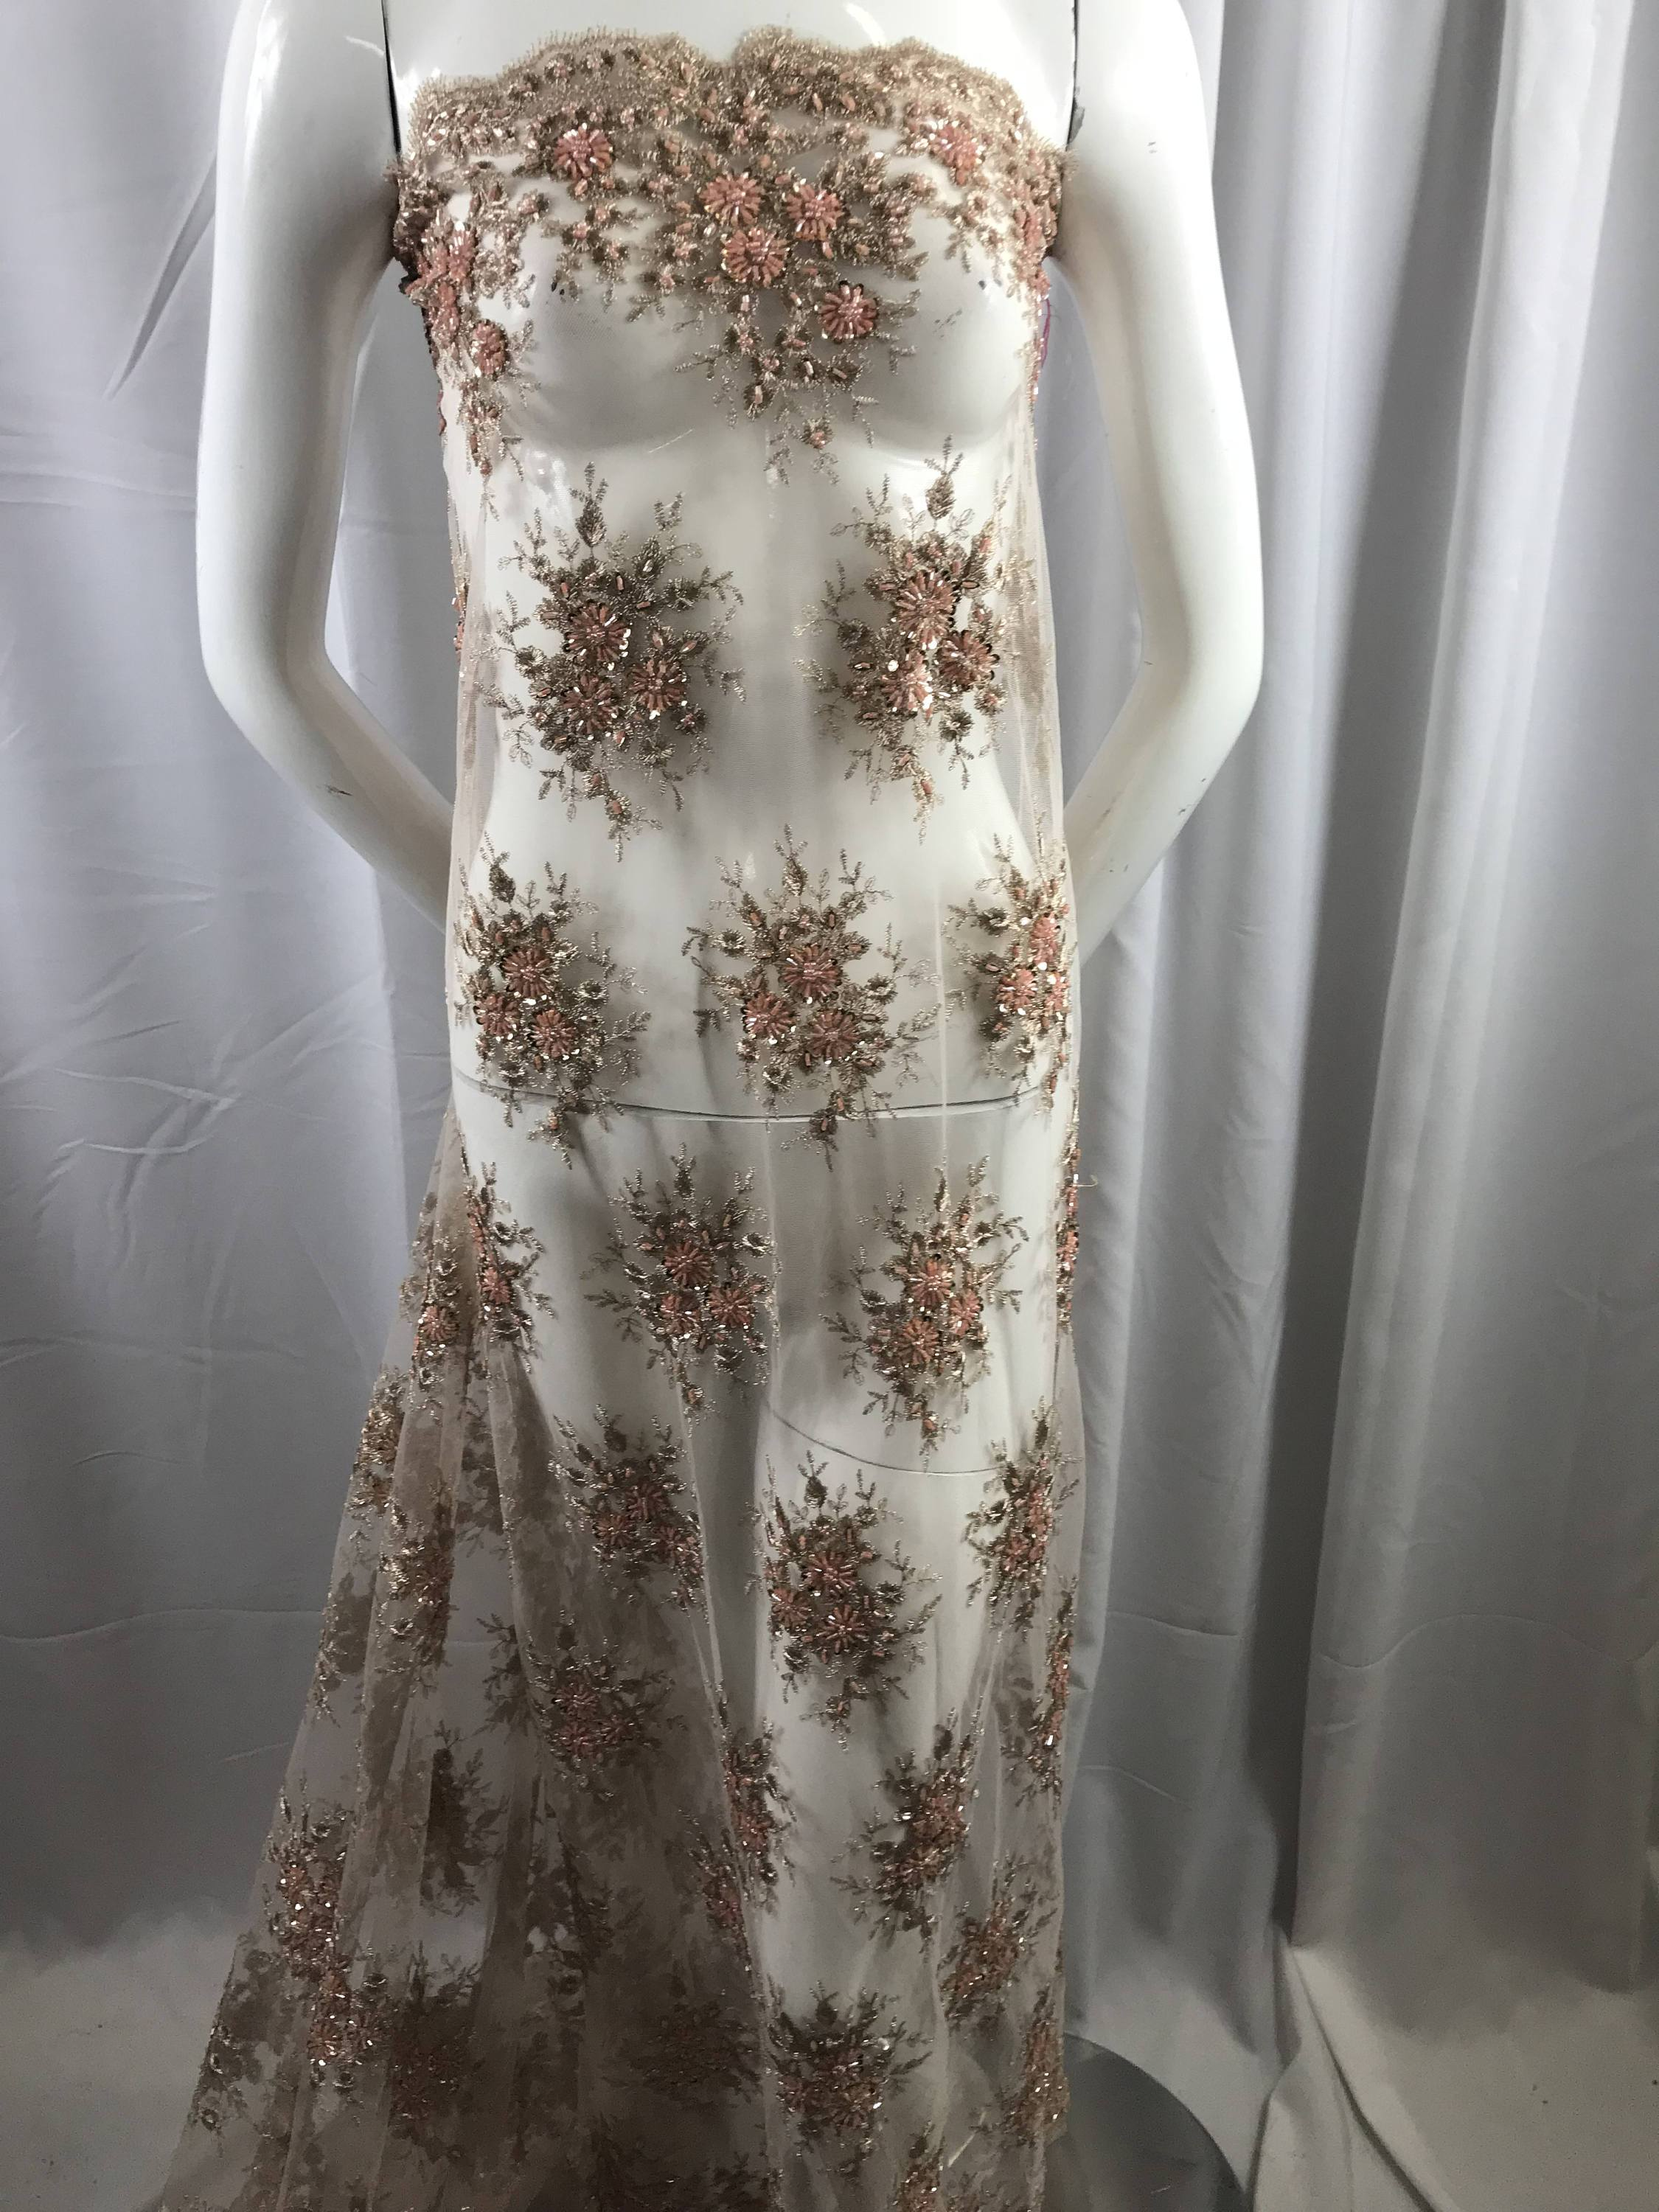 Graysilver gaviota design embroider and beaded on a mesh lace WeddingBridalPromNightgown fabric Sold by the yard.